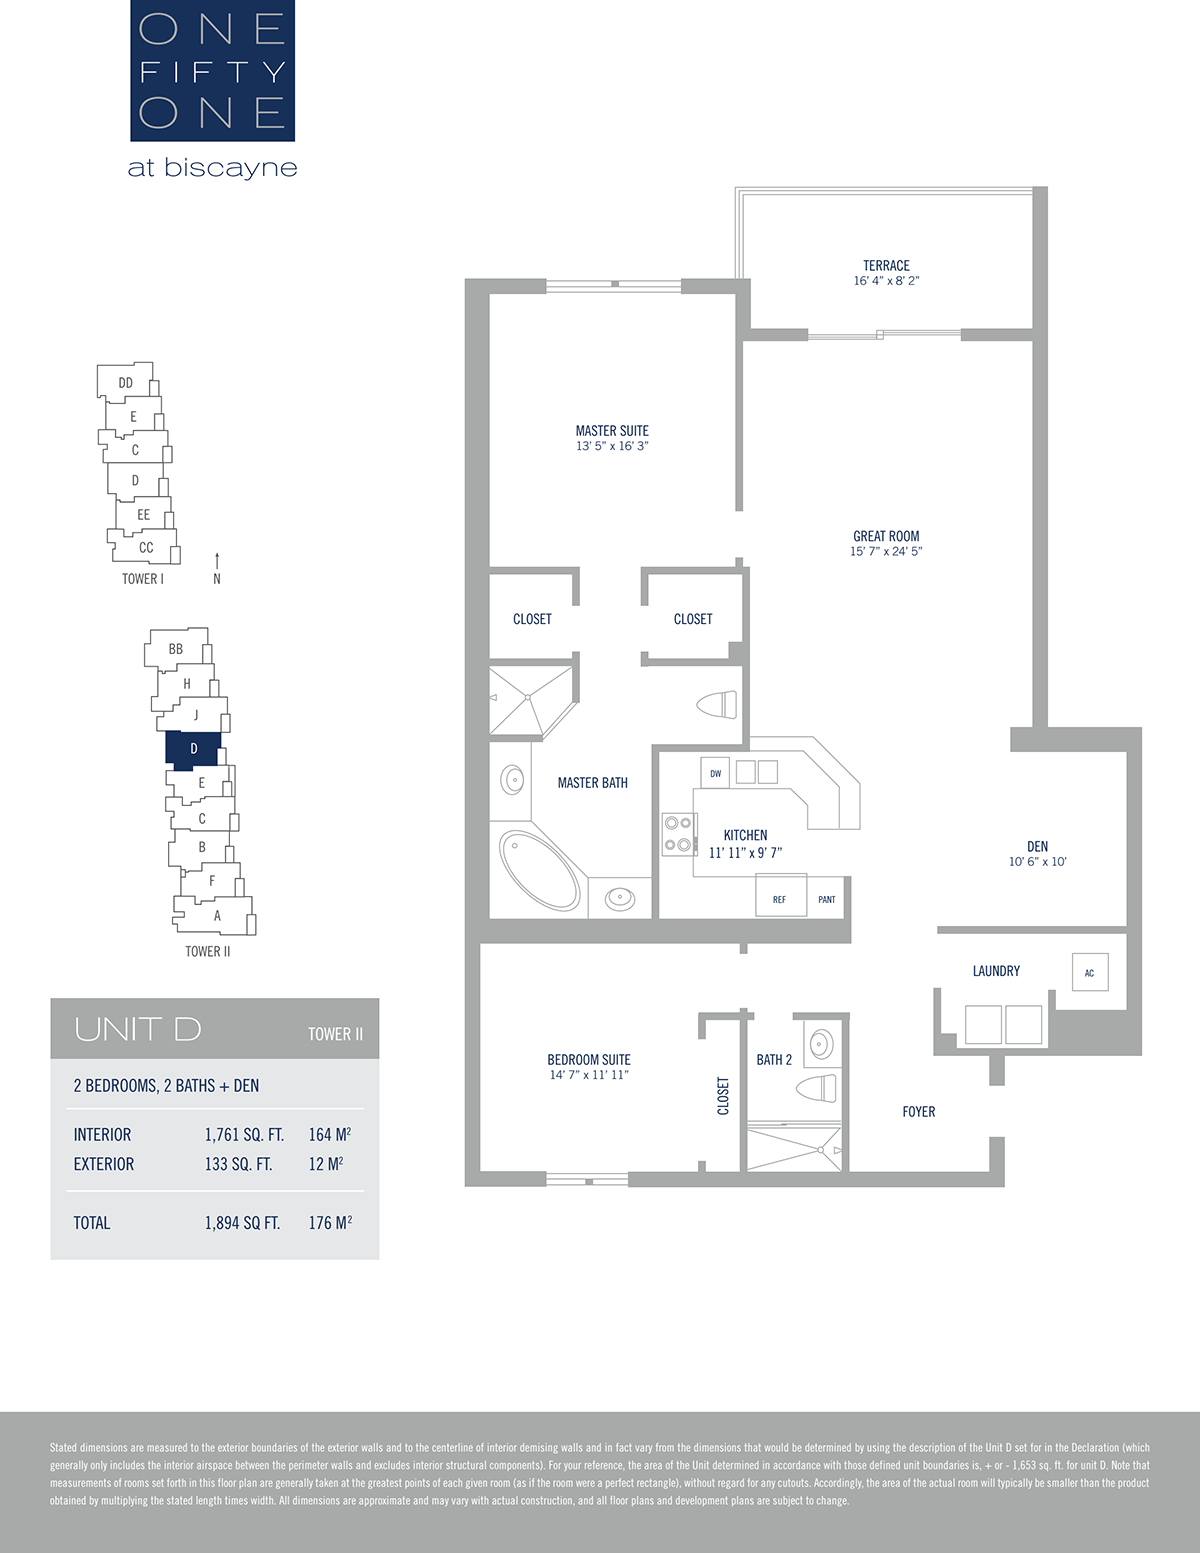 One Fifty One At Biscayne - Floorplan 5